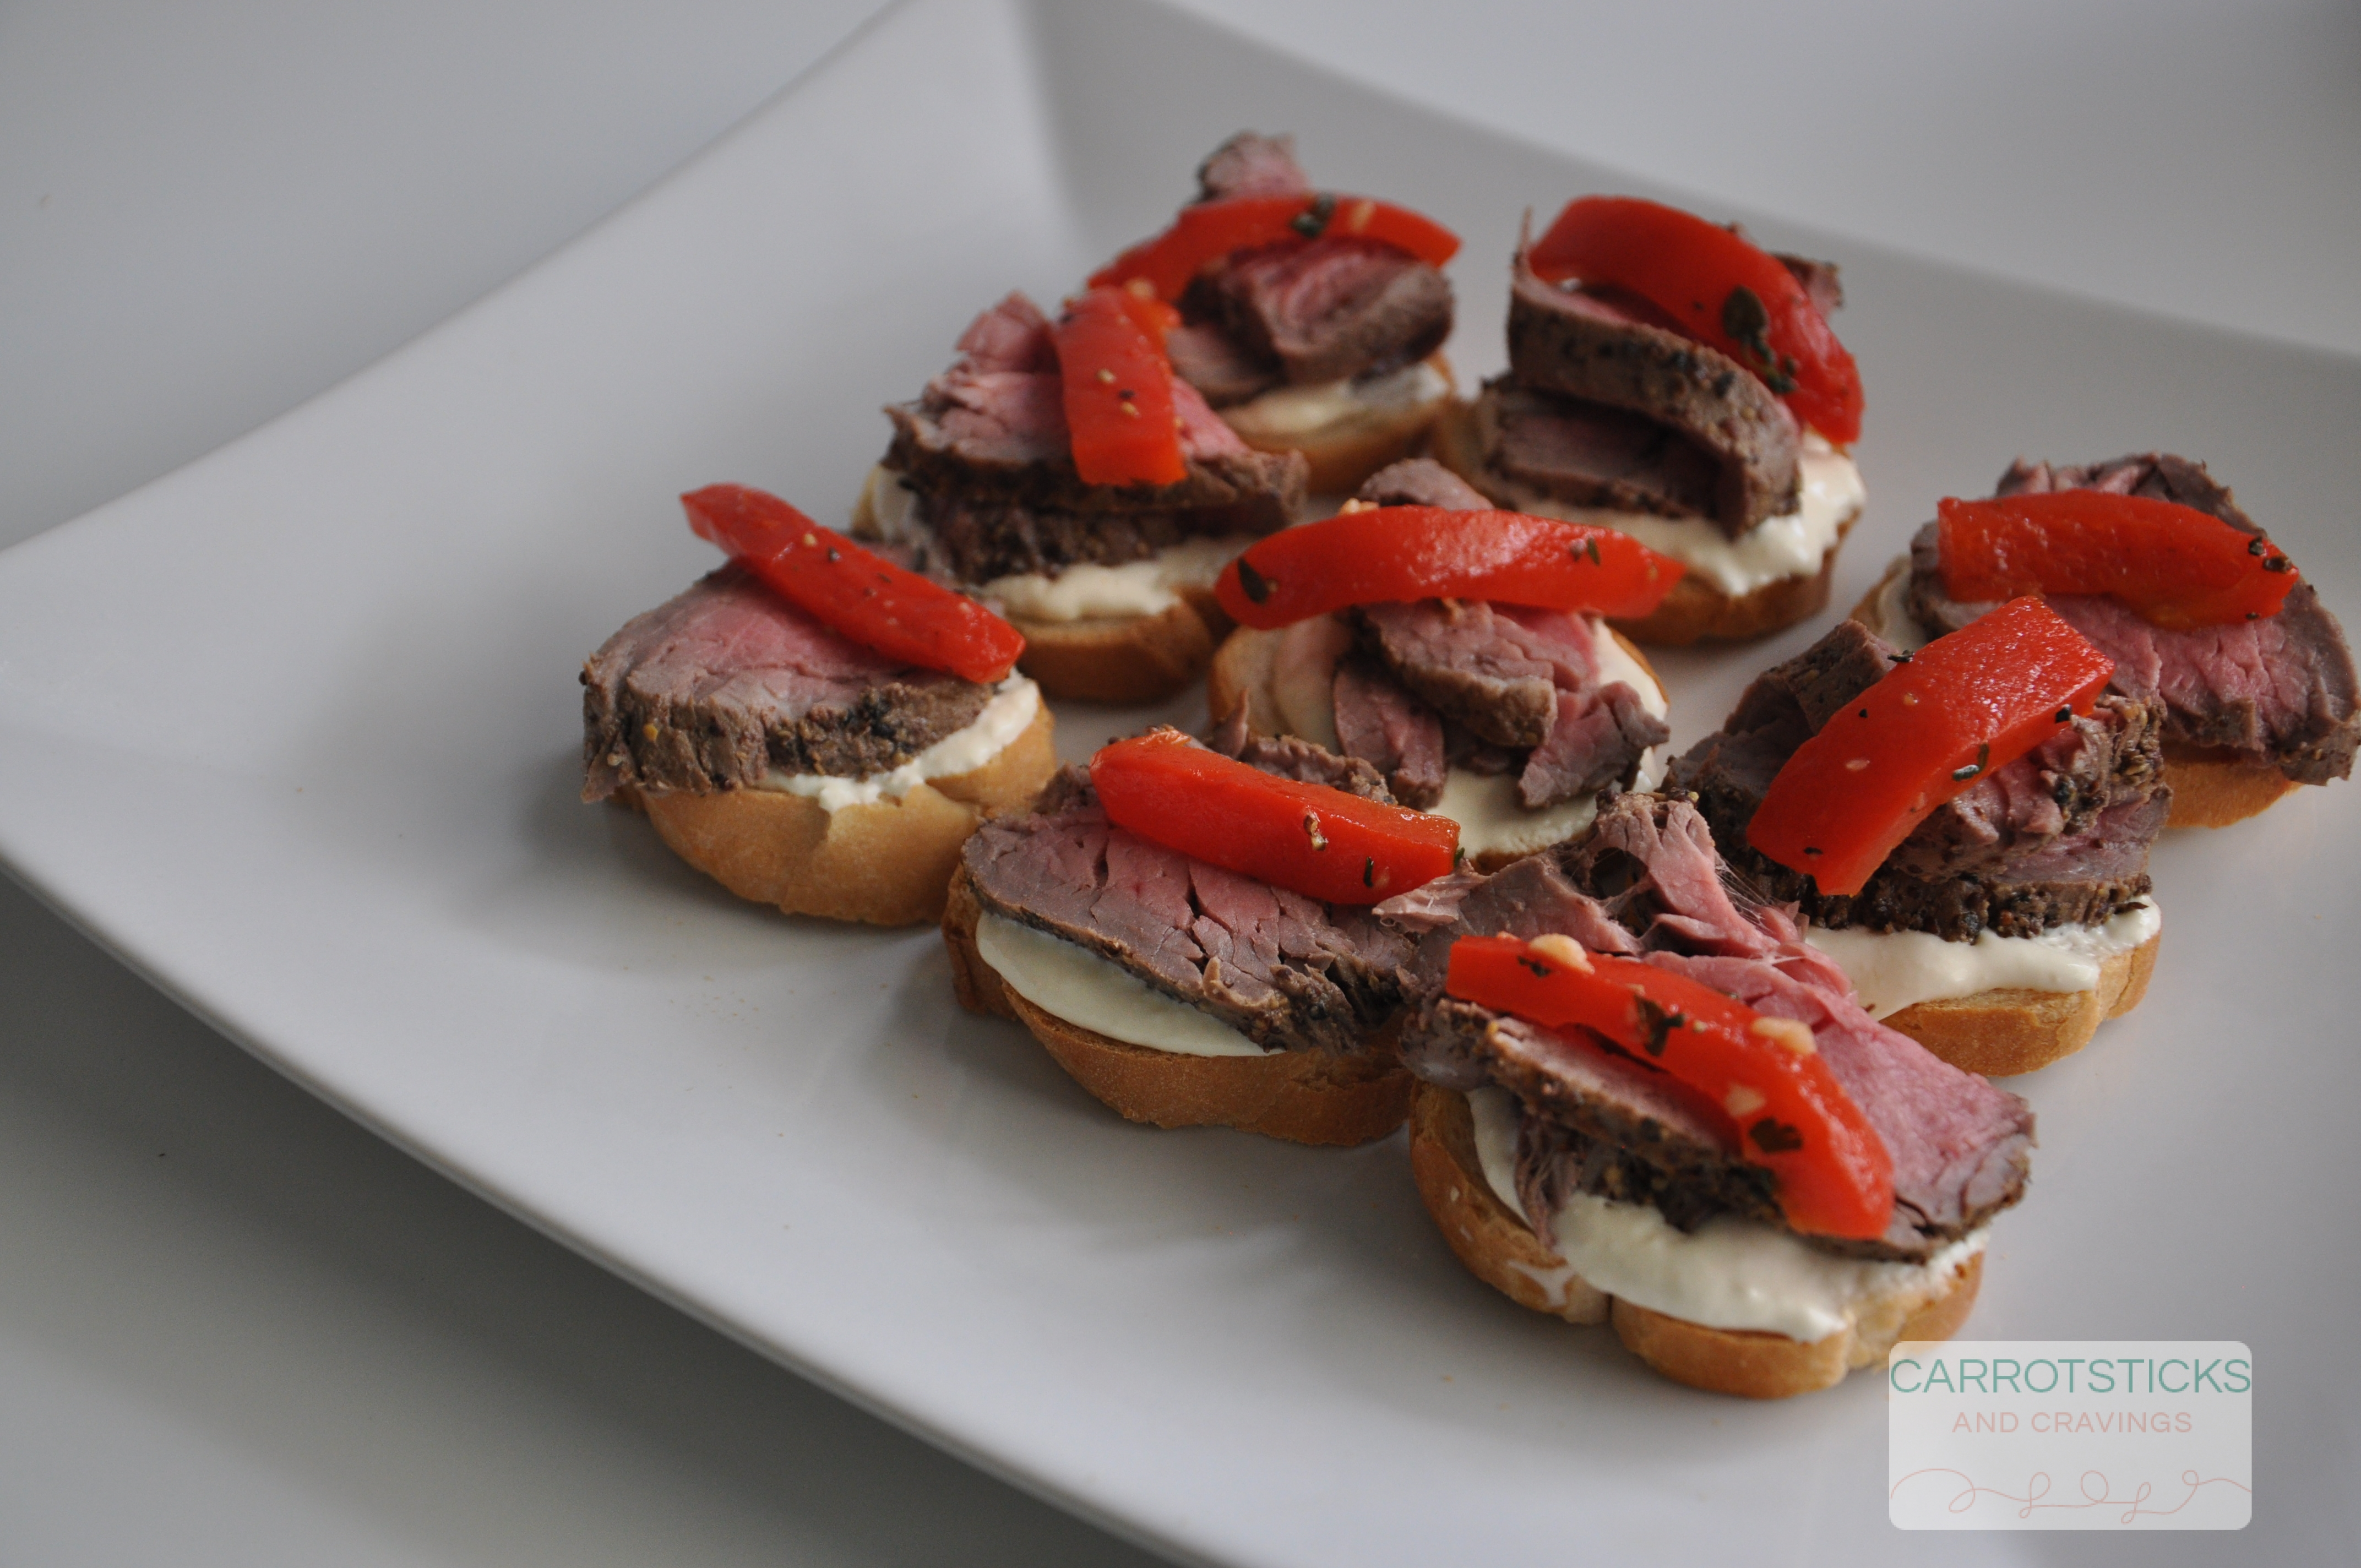 Roasted rare beef canap s carrotsticks and cravings for Roast beef canape